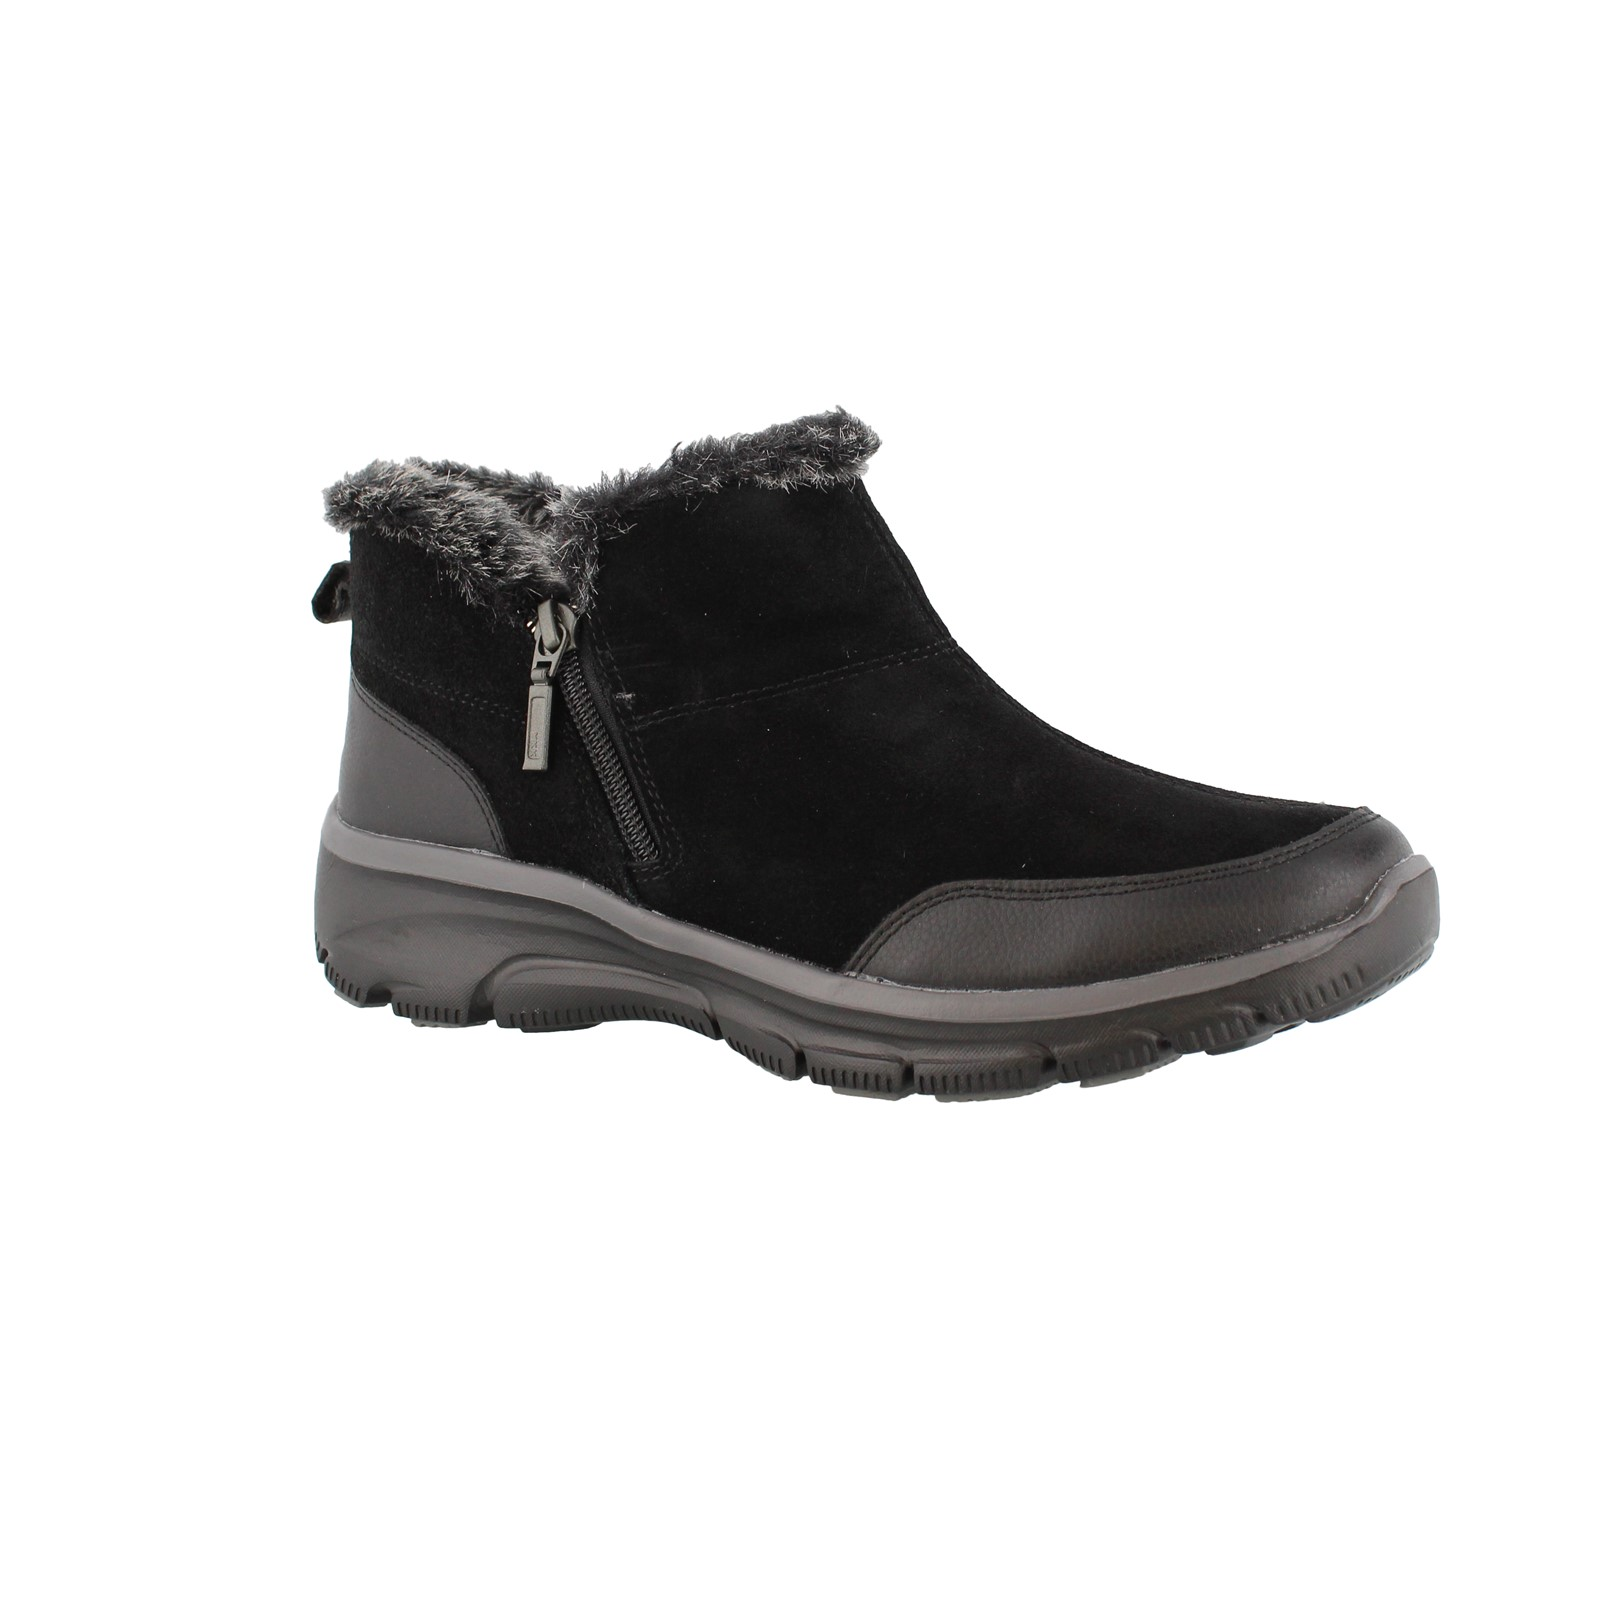 Women's Skechers, Relaxed Fit Easy Going Zip It Ankle Boots